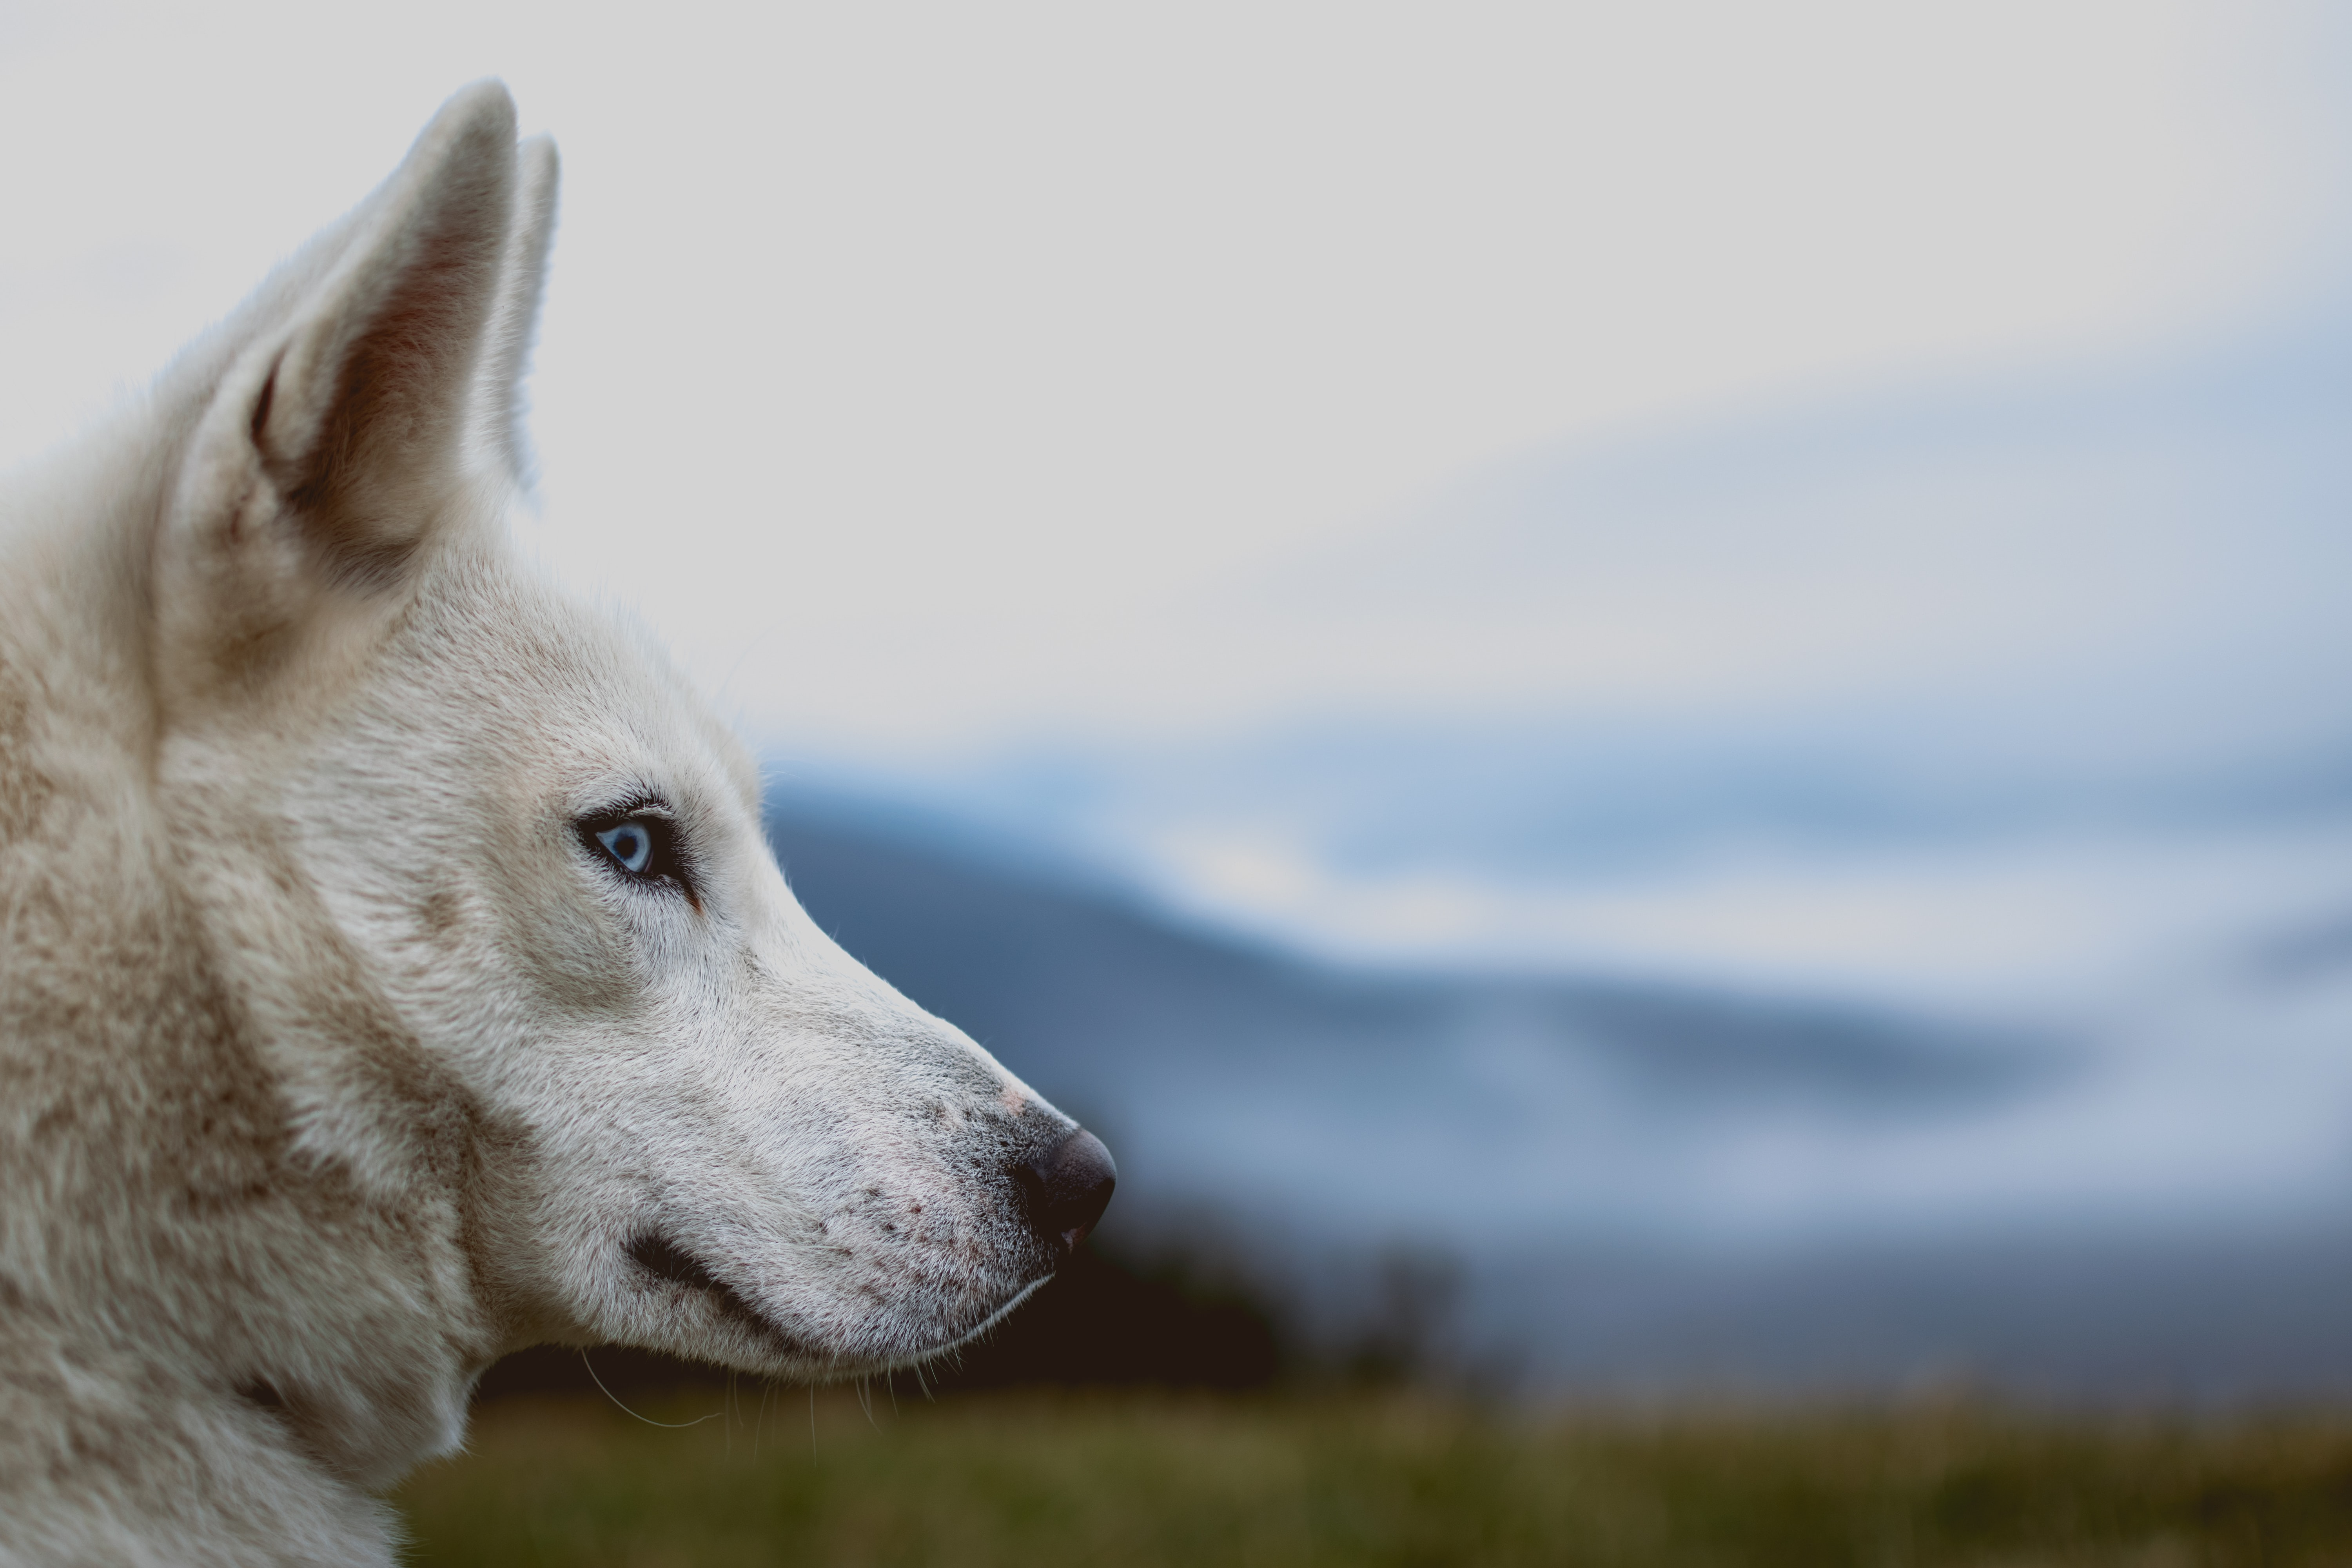 white wolf in close-up photography at daytime